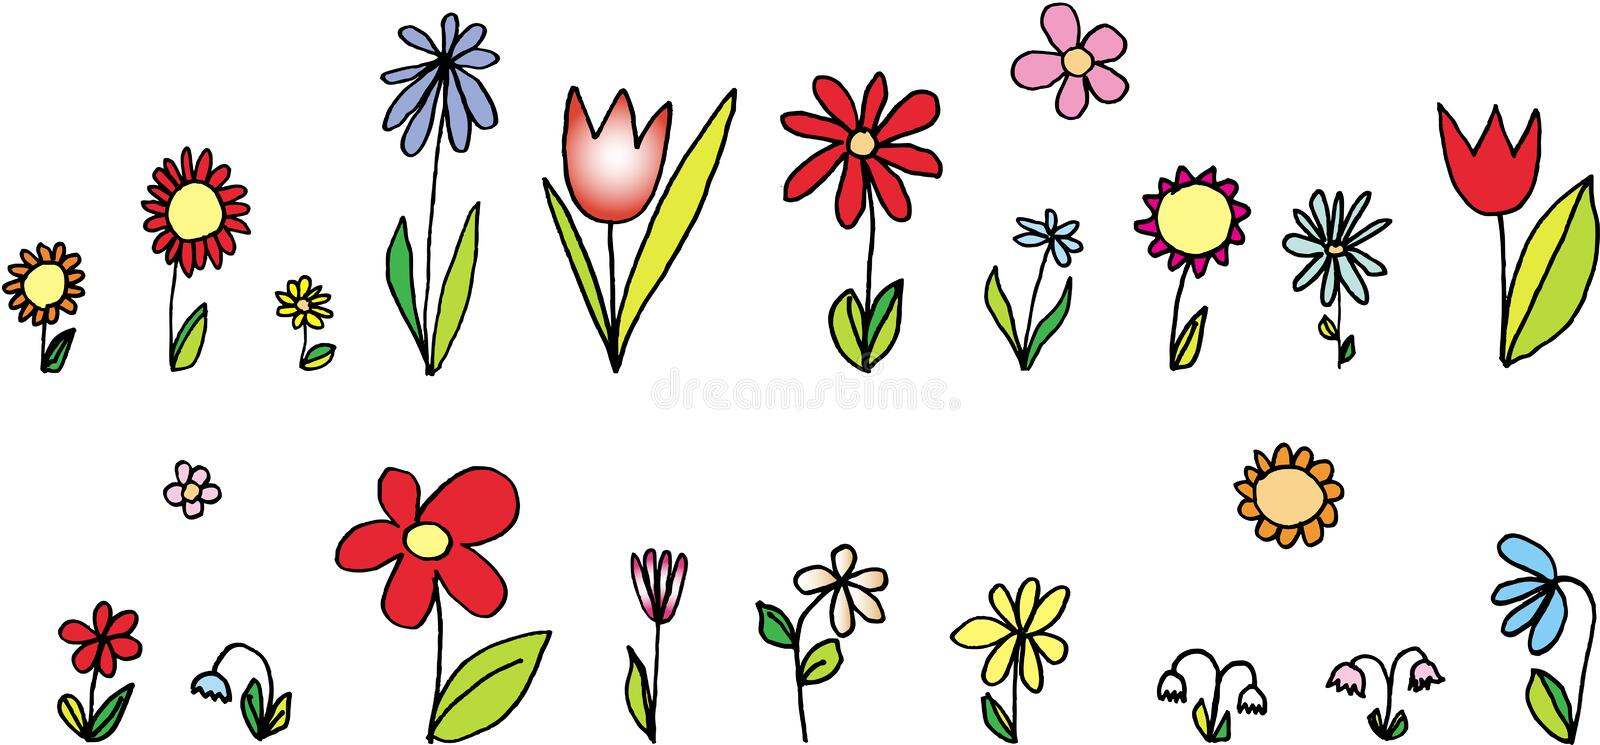 flores fijadas libre illustration